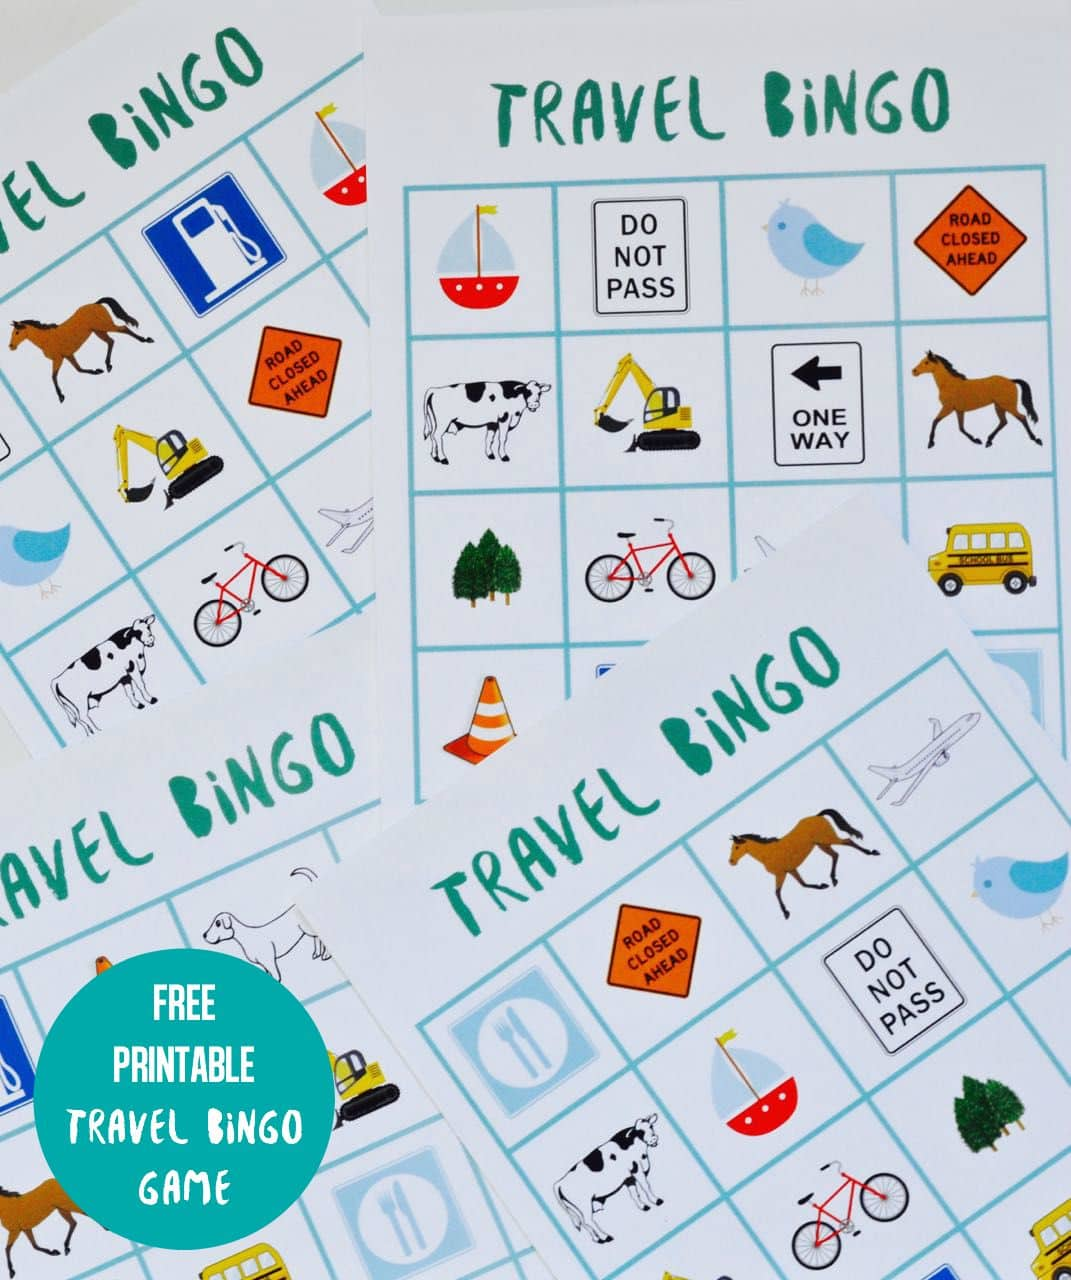 It's just a picture of Witty Printable Travel Bingo